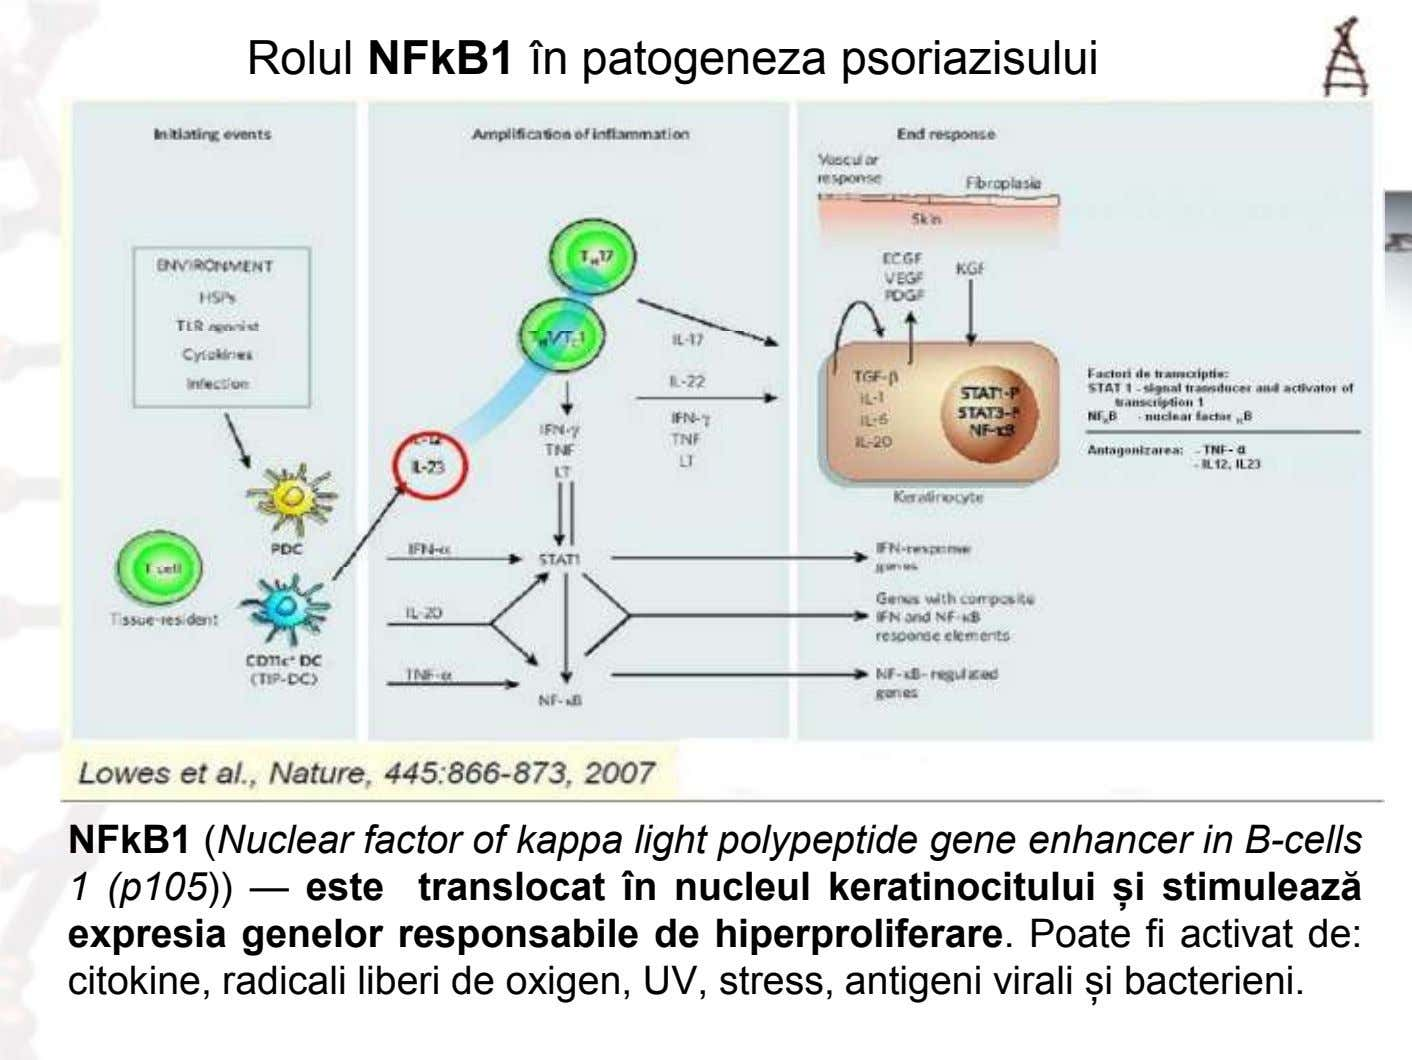 Rolul NFkB1 în patogeneza psoriazisului NFkB1 (Nuclear factor of kappa light polypeptide gene enhancer in